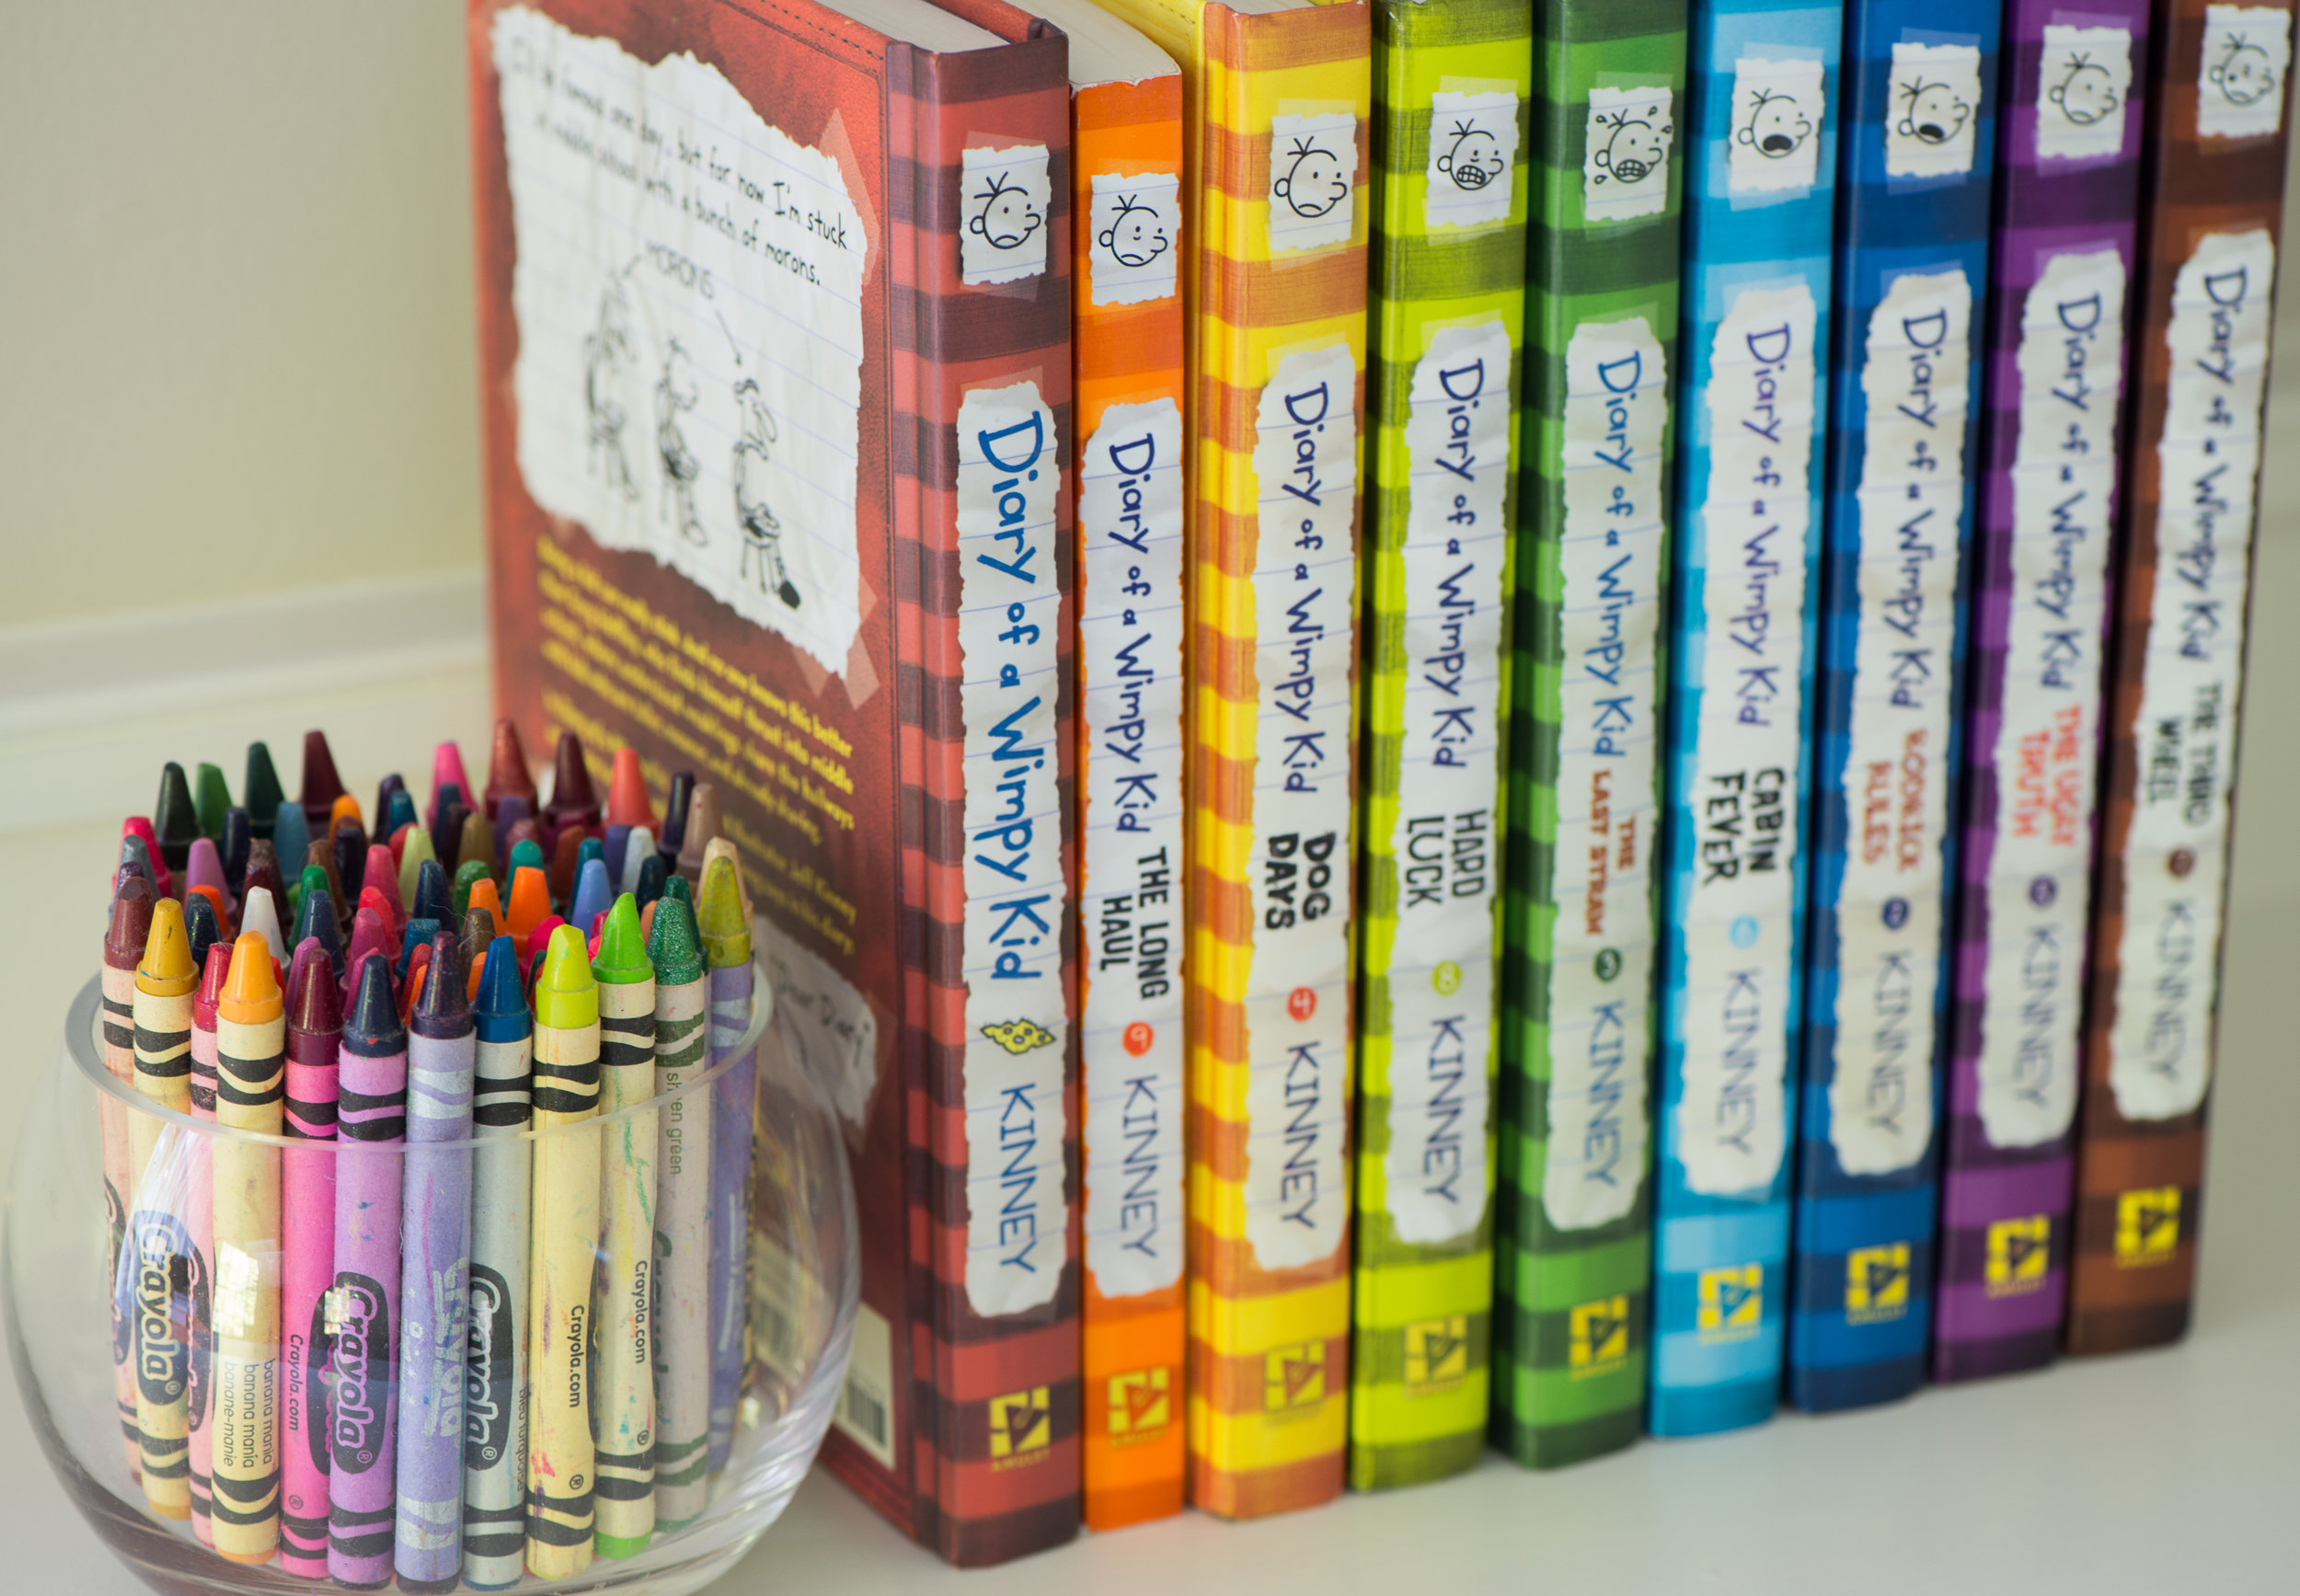 DETAILS - BOOKS AND CRAYONS